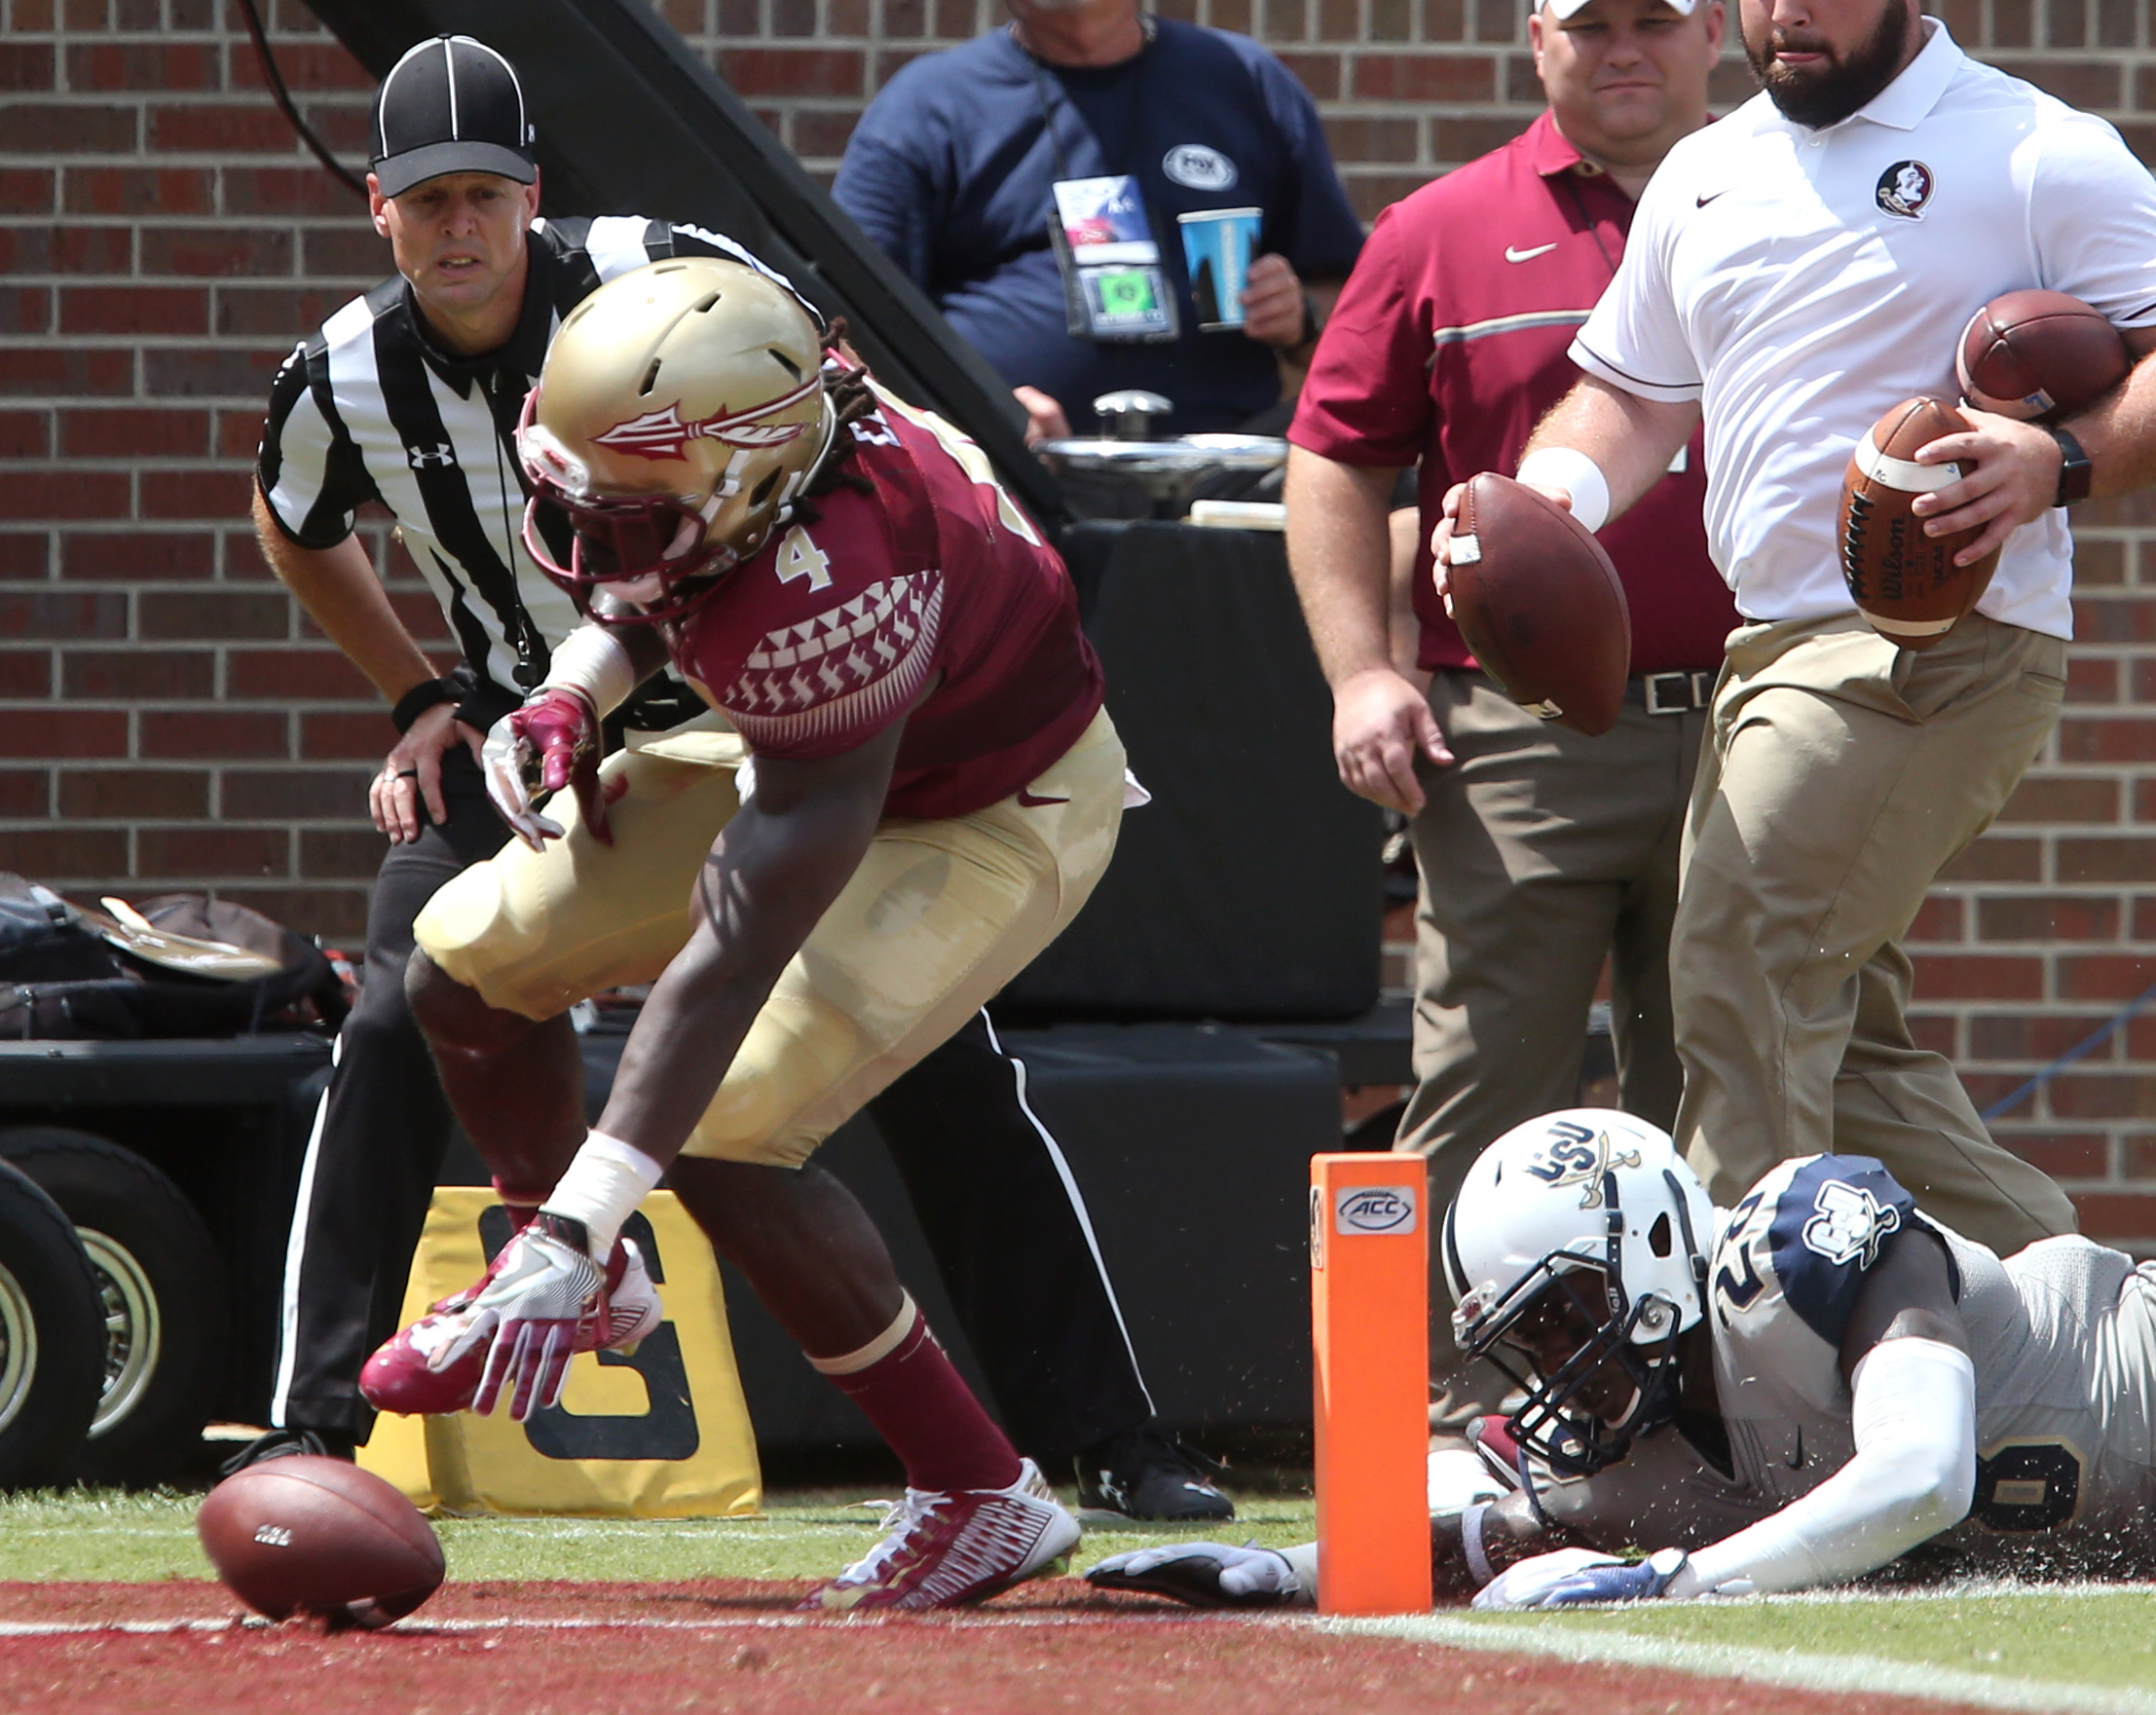 Florida State's Davin Cook tries to squeeze the ball past the pylon for a touchdown as Charleston Southern's Larenzo Mathis defends in the first half of an NCAA college football game, Saturday, Sept. 10, 2016, in Tallahassee, Fla. (AP Photo/Steve Cannon)